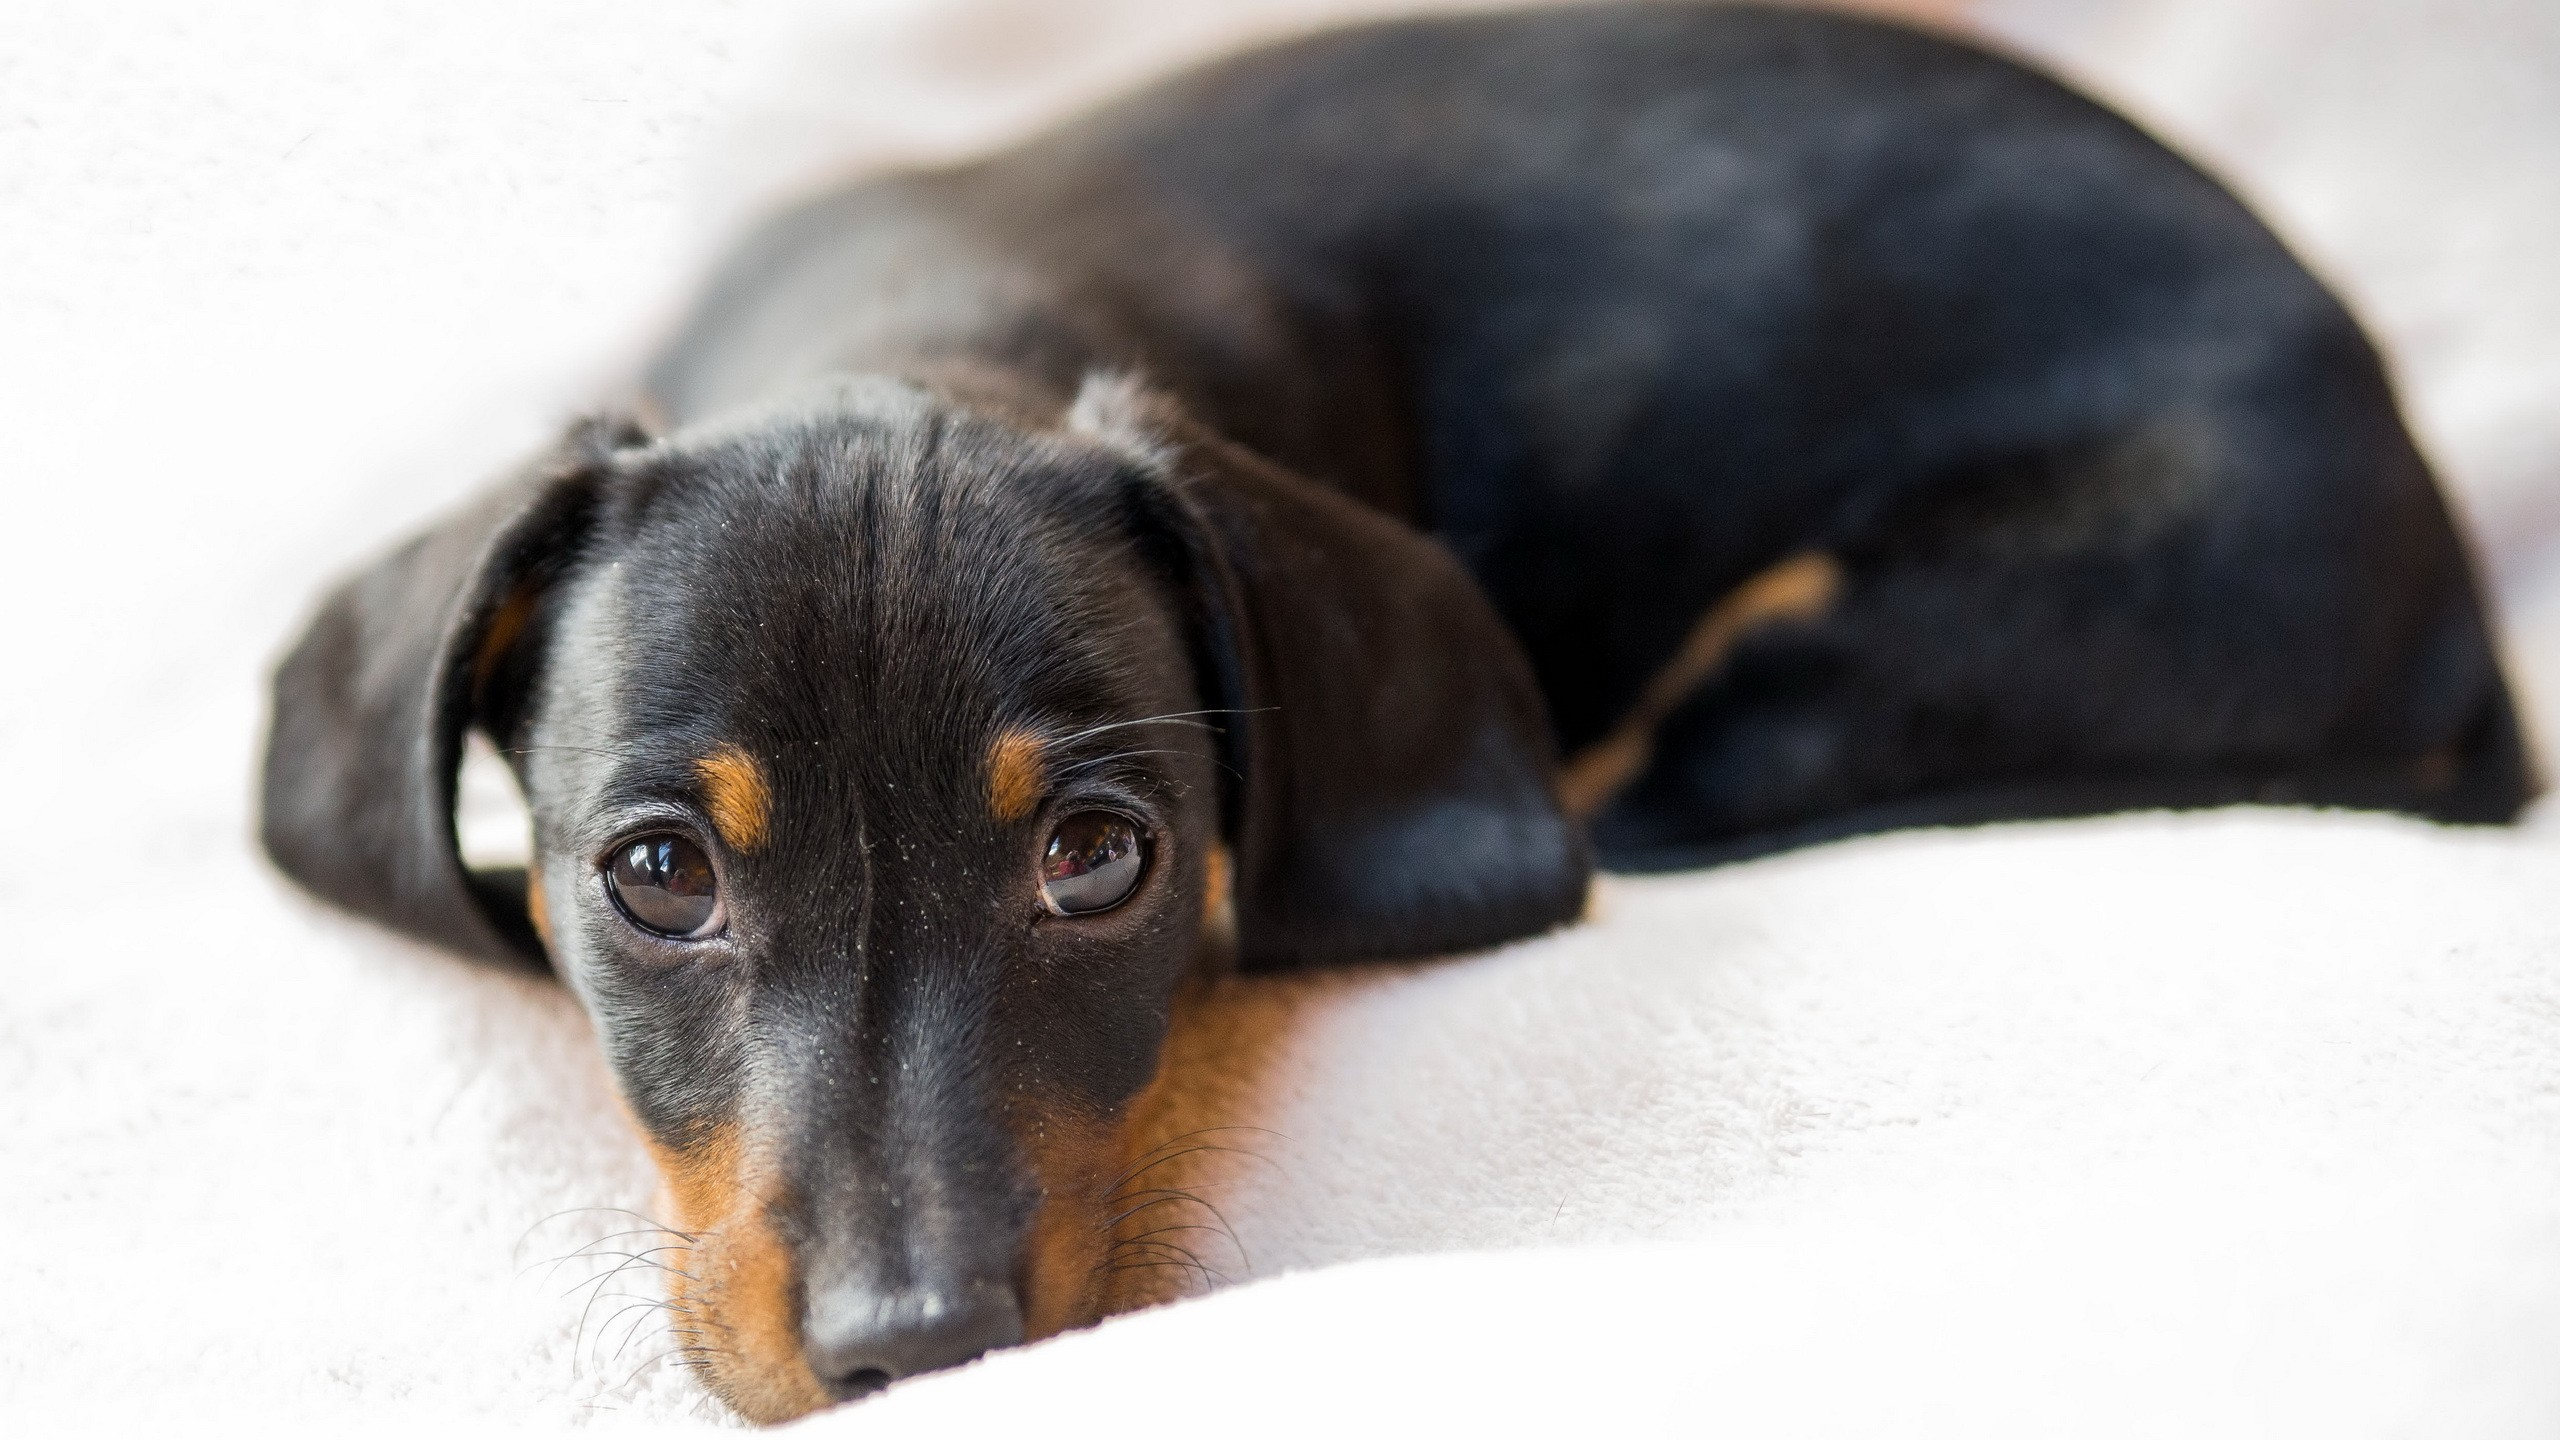 2560x1440 Animals / Dachshund dog Wallpaper